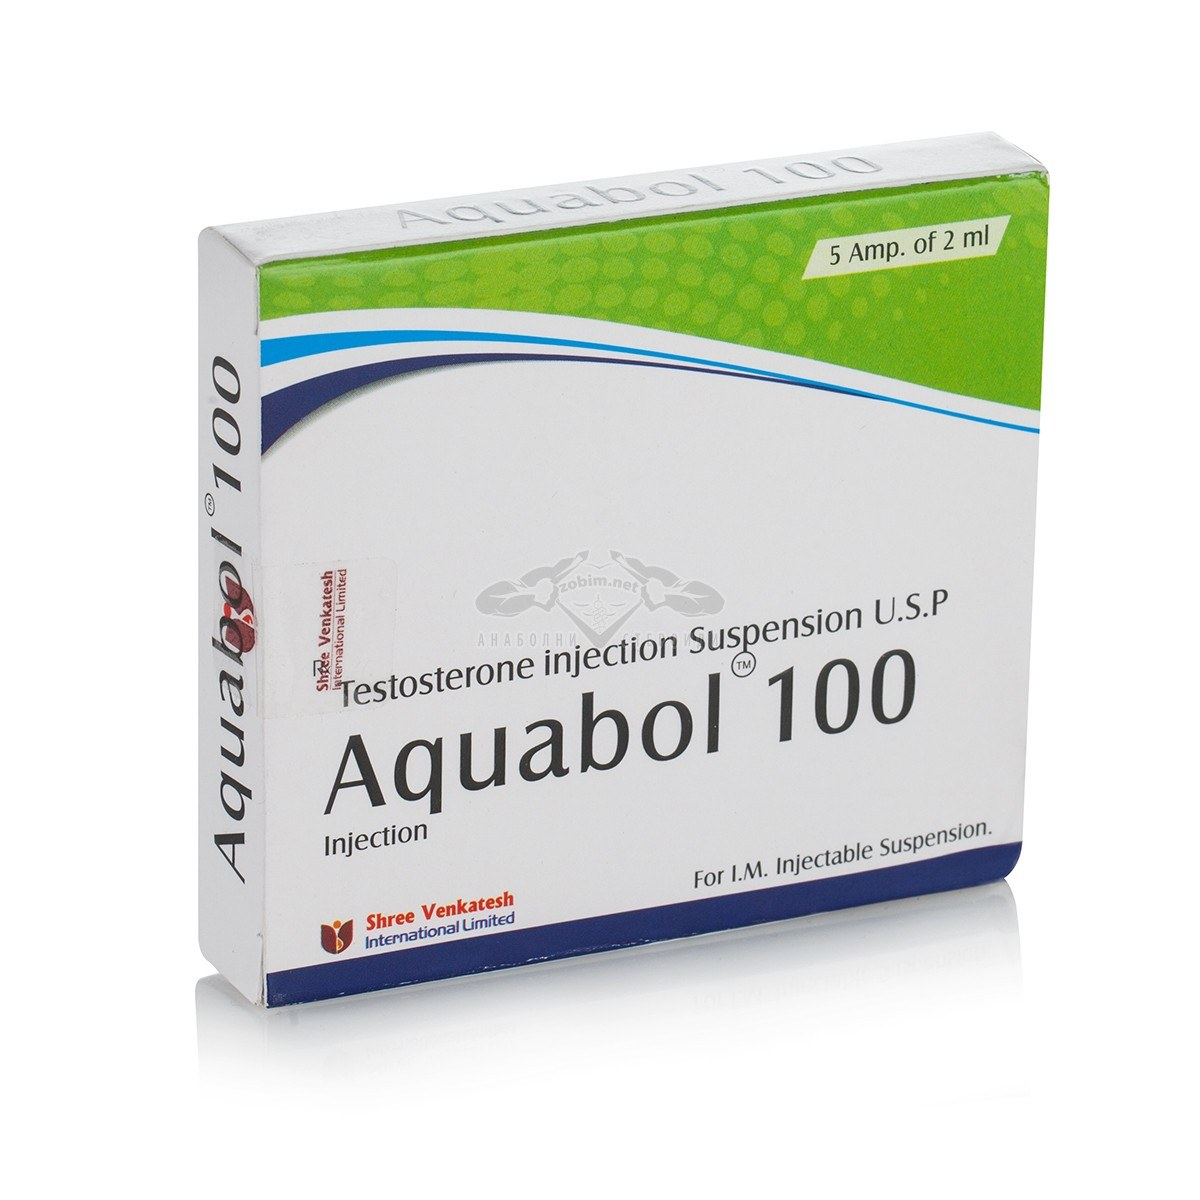 Aquabol 100 (Testosterone Suspension) – 5 амп. х 100 мг.